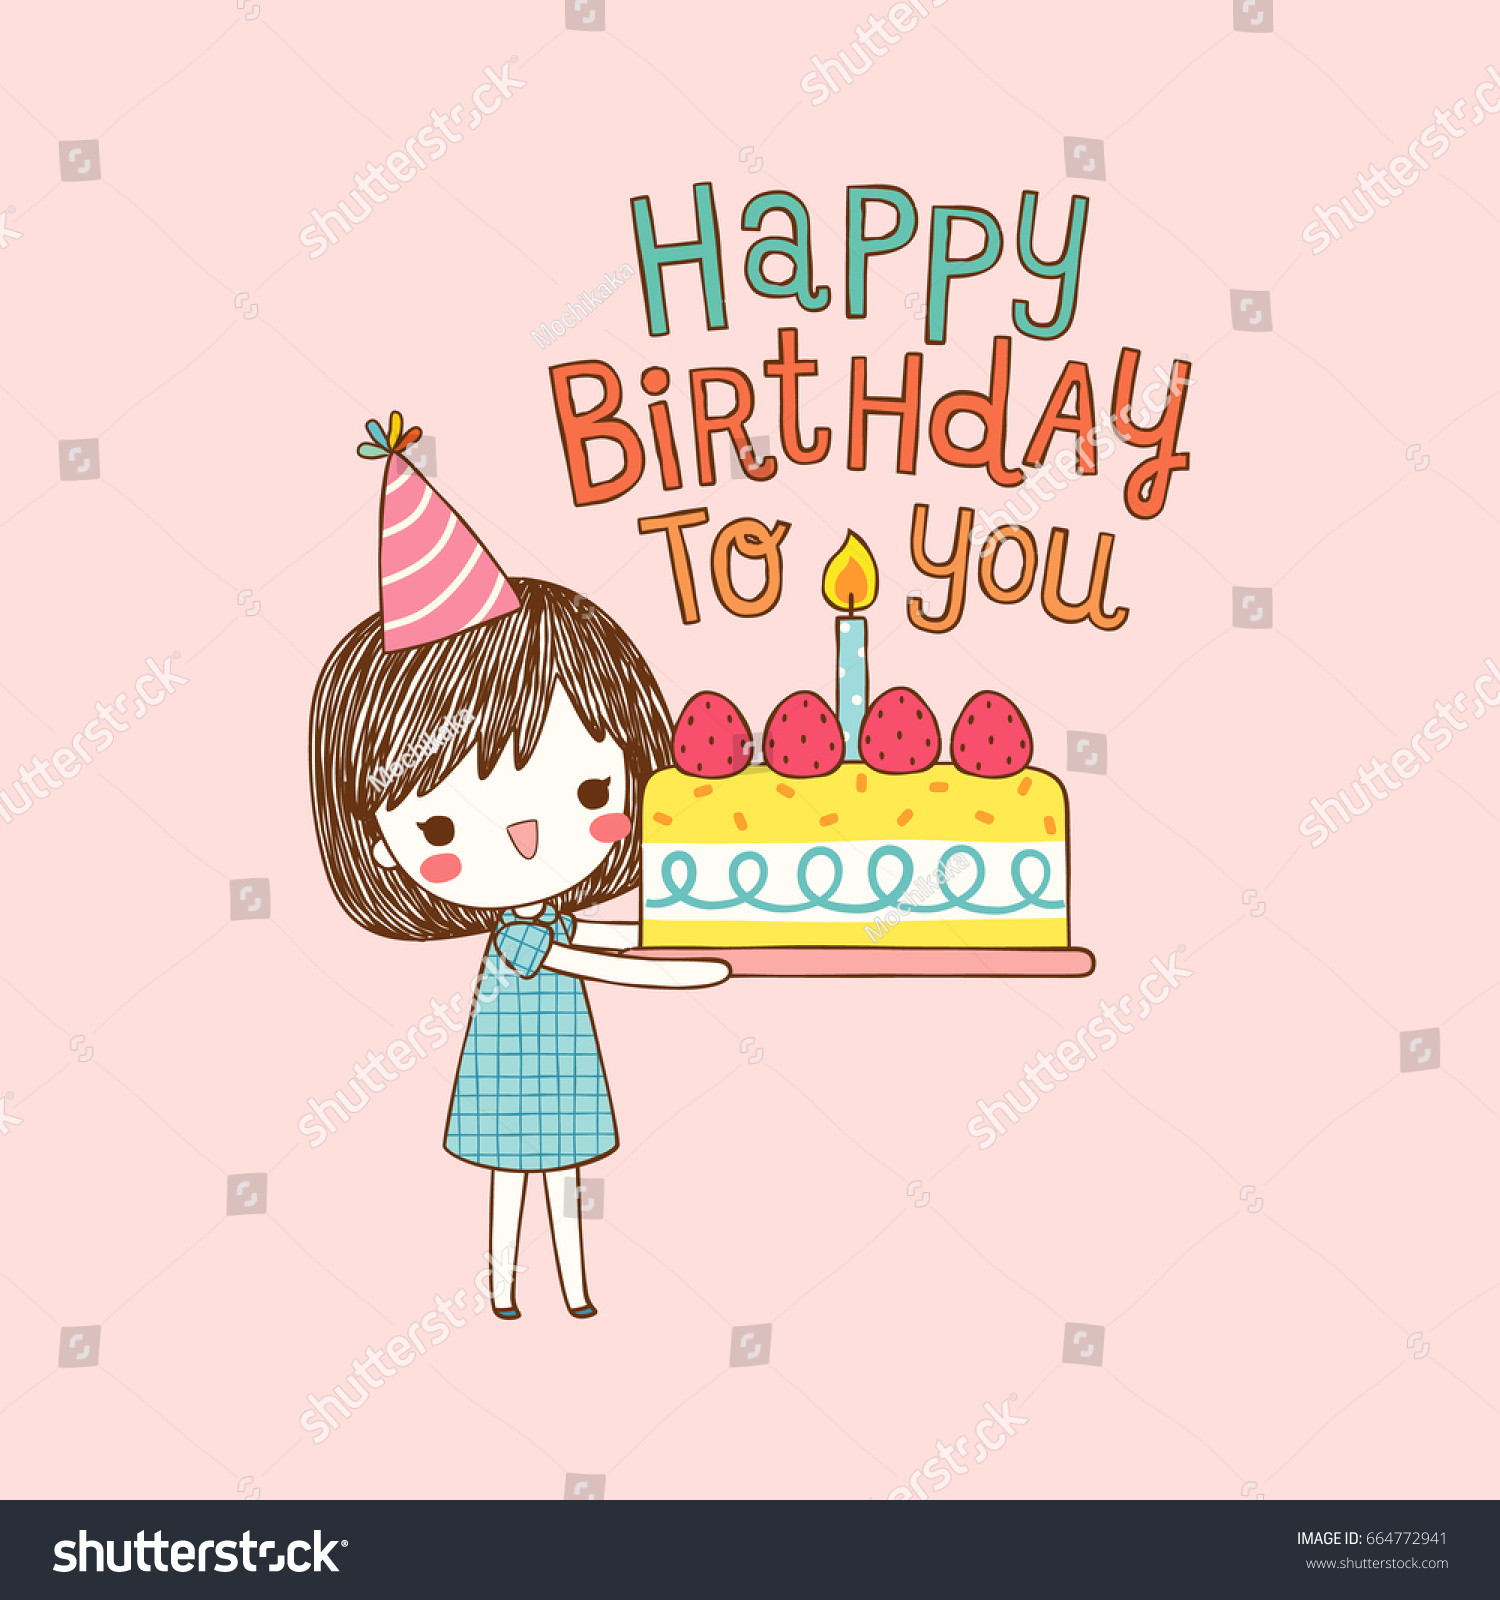 happy birthday girl ; stock-vector-happy-birthday-card-cute-girl-holding-a-large-cake-with-text-happy-birthday-to-you-flat-design-664772941